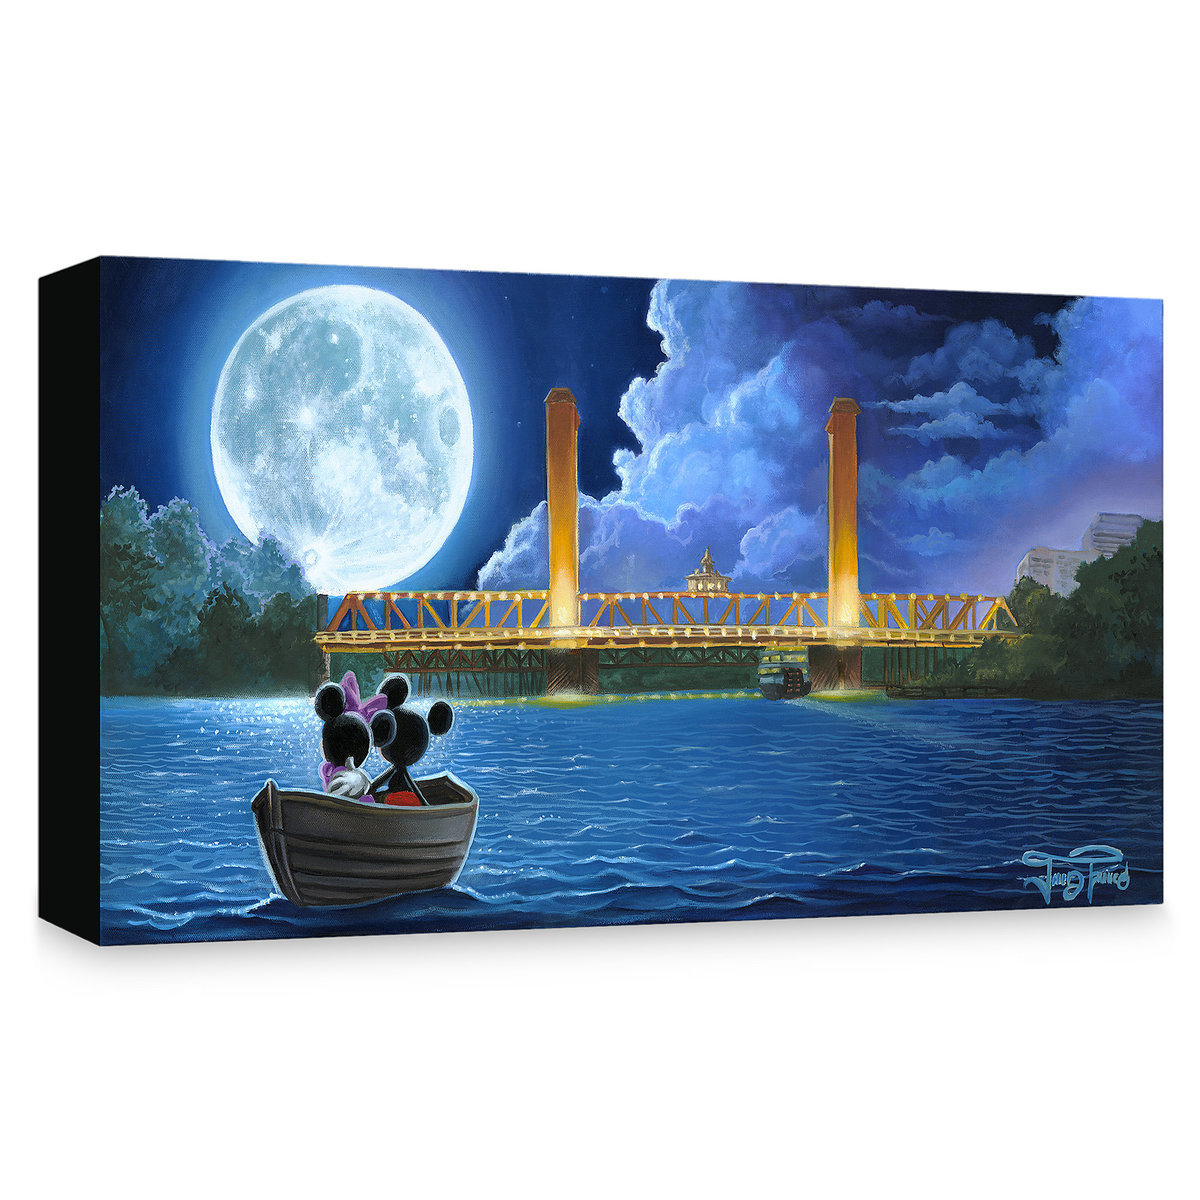 2195a6fd368 Product Image of Mickey and Minnie Mouse   Drifting in the Moonlight    Giclée